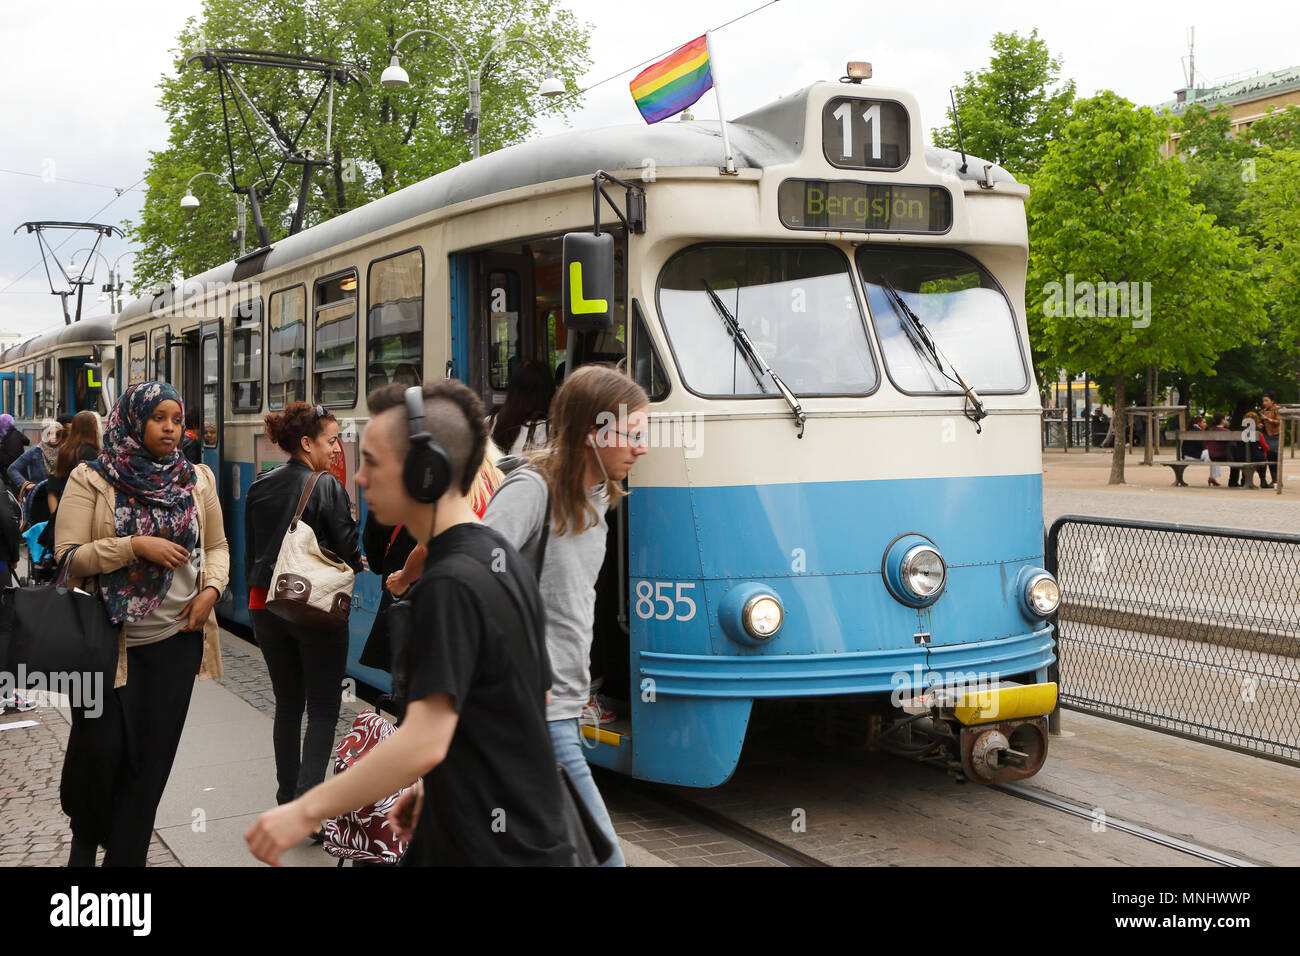 Gothneburg, Sweden - May 28, 2013: Tram on route 11 at stop  decorated with a rainbow flag during the West pride event - Stock Image